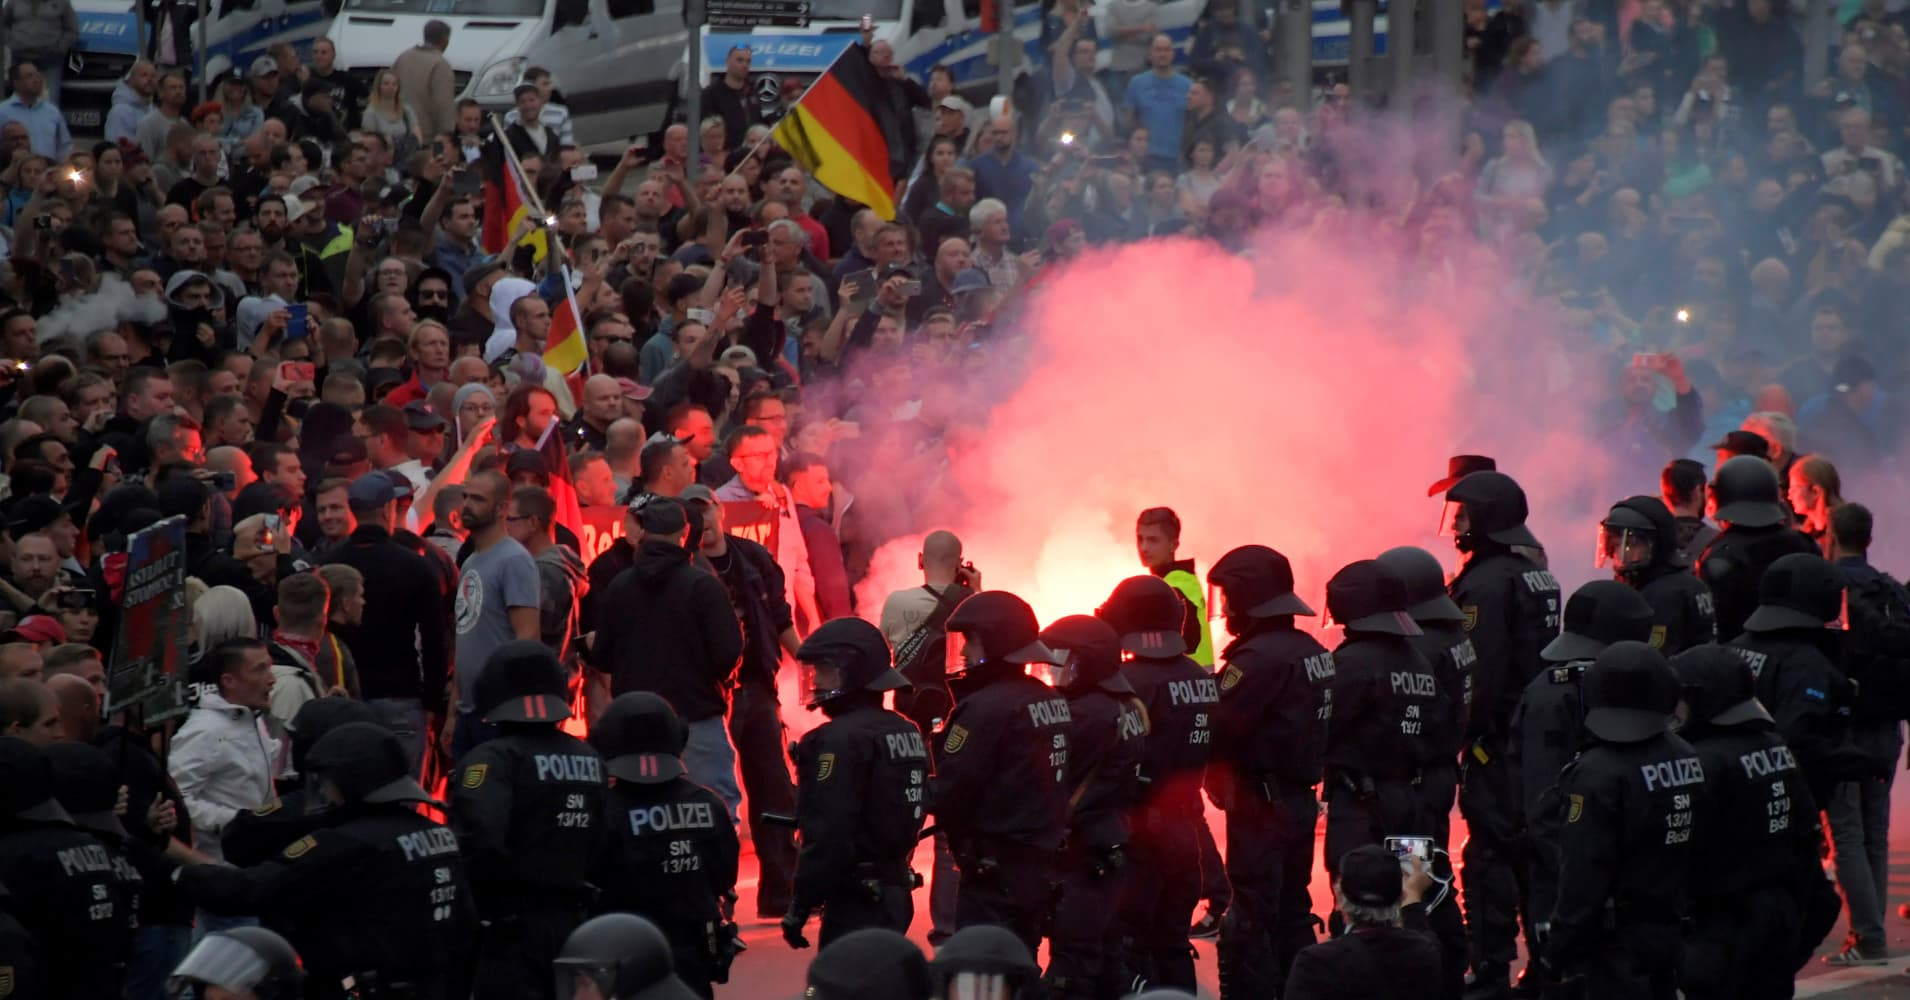 German far-right protesters clash with leftists after Chemnitz stabbing